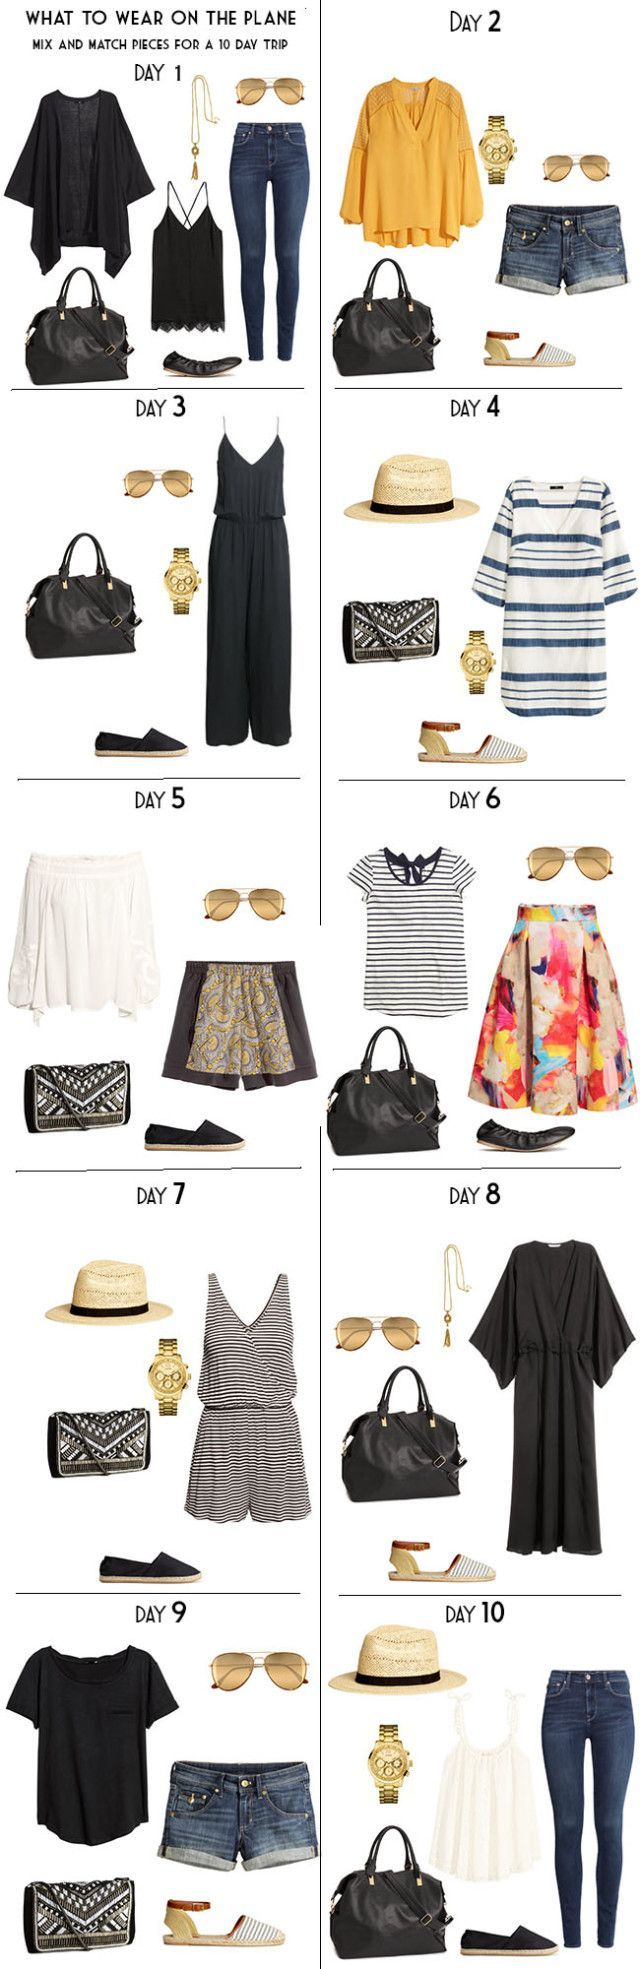 12 mexico vacation outfits ideas for women - Page 4 of 13 - summervacationsin.com